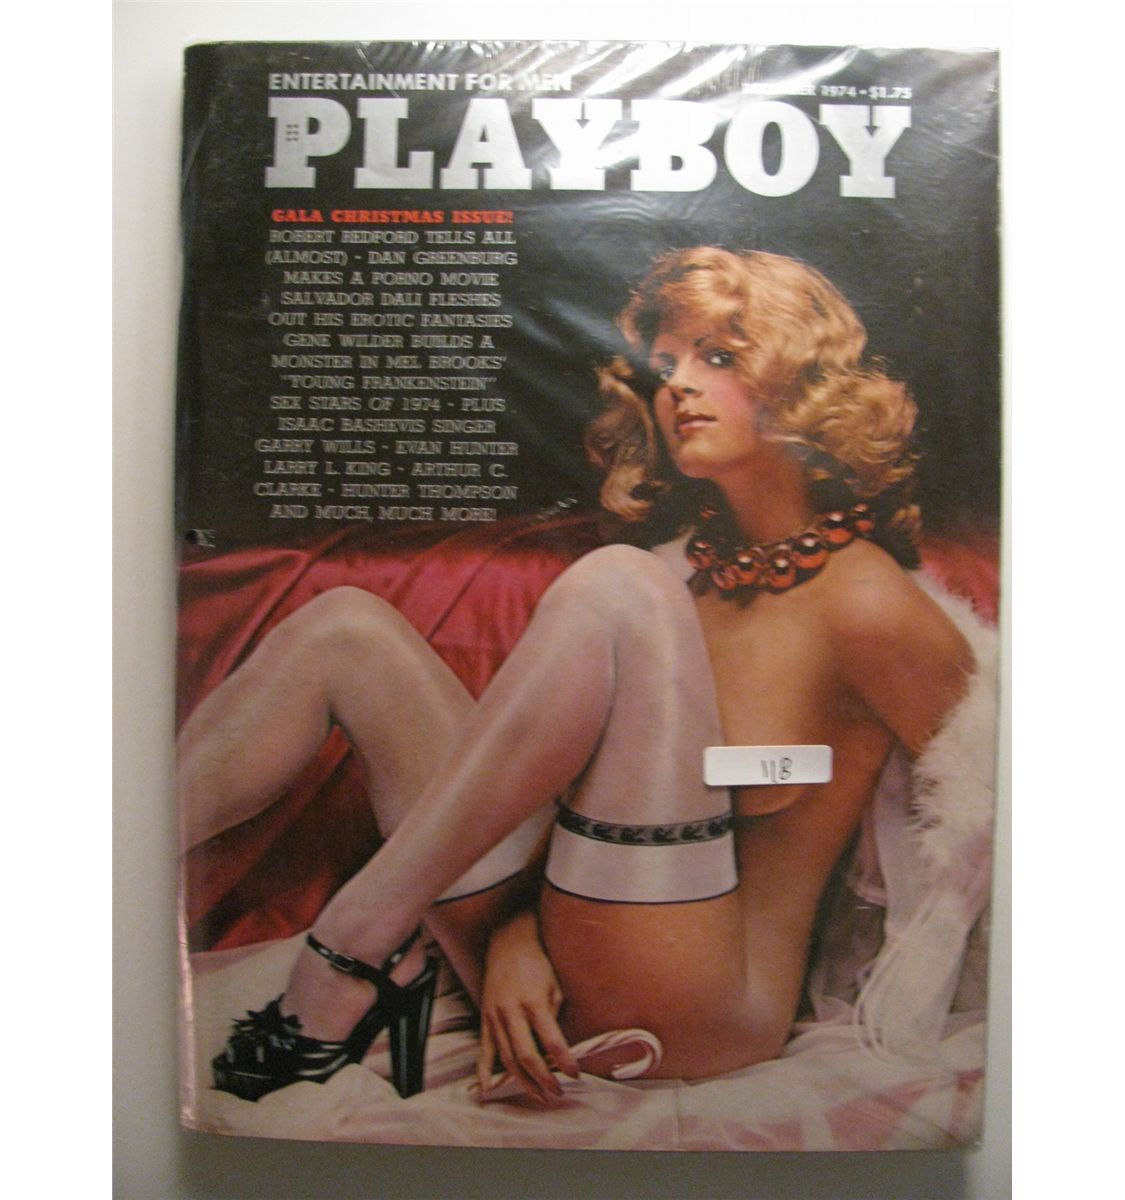 December 1974 Playboy; Gala Christmas issue